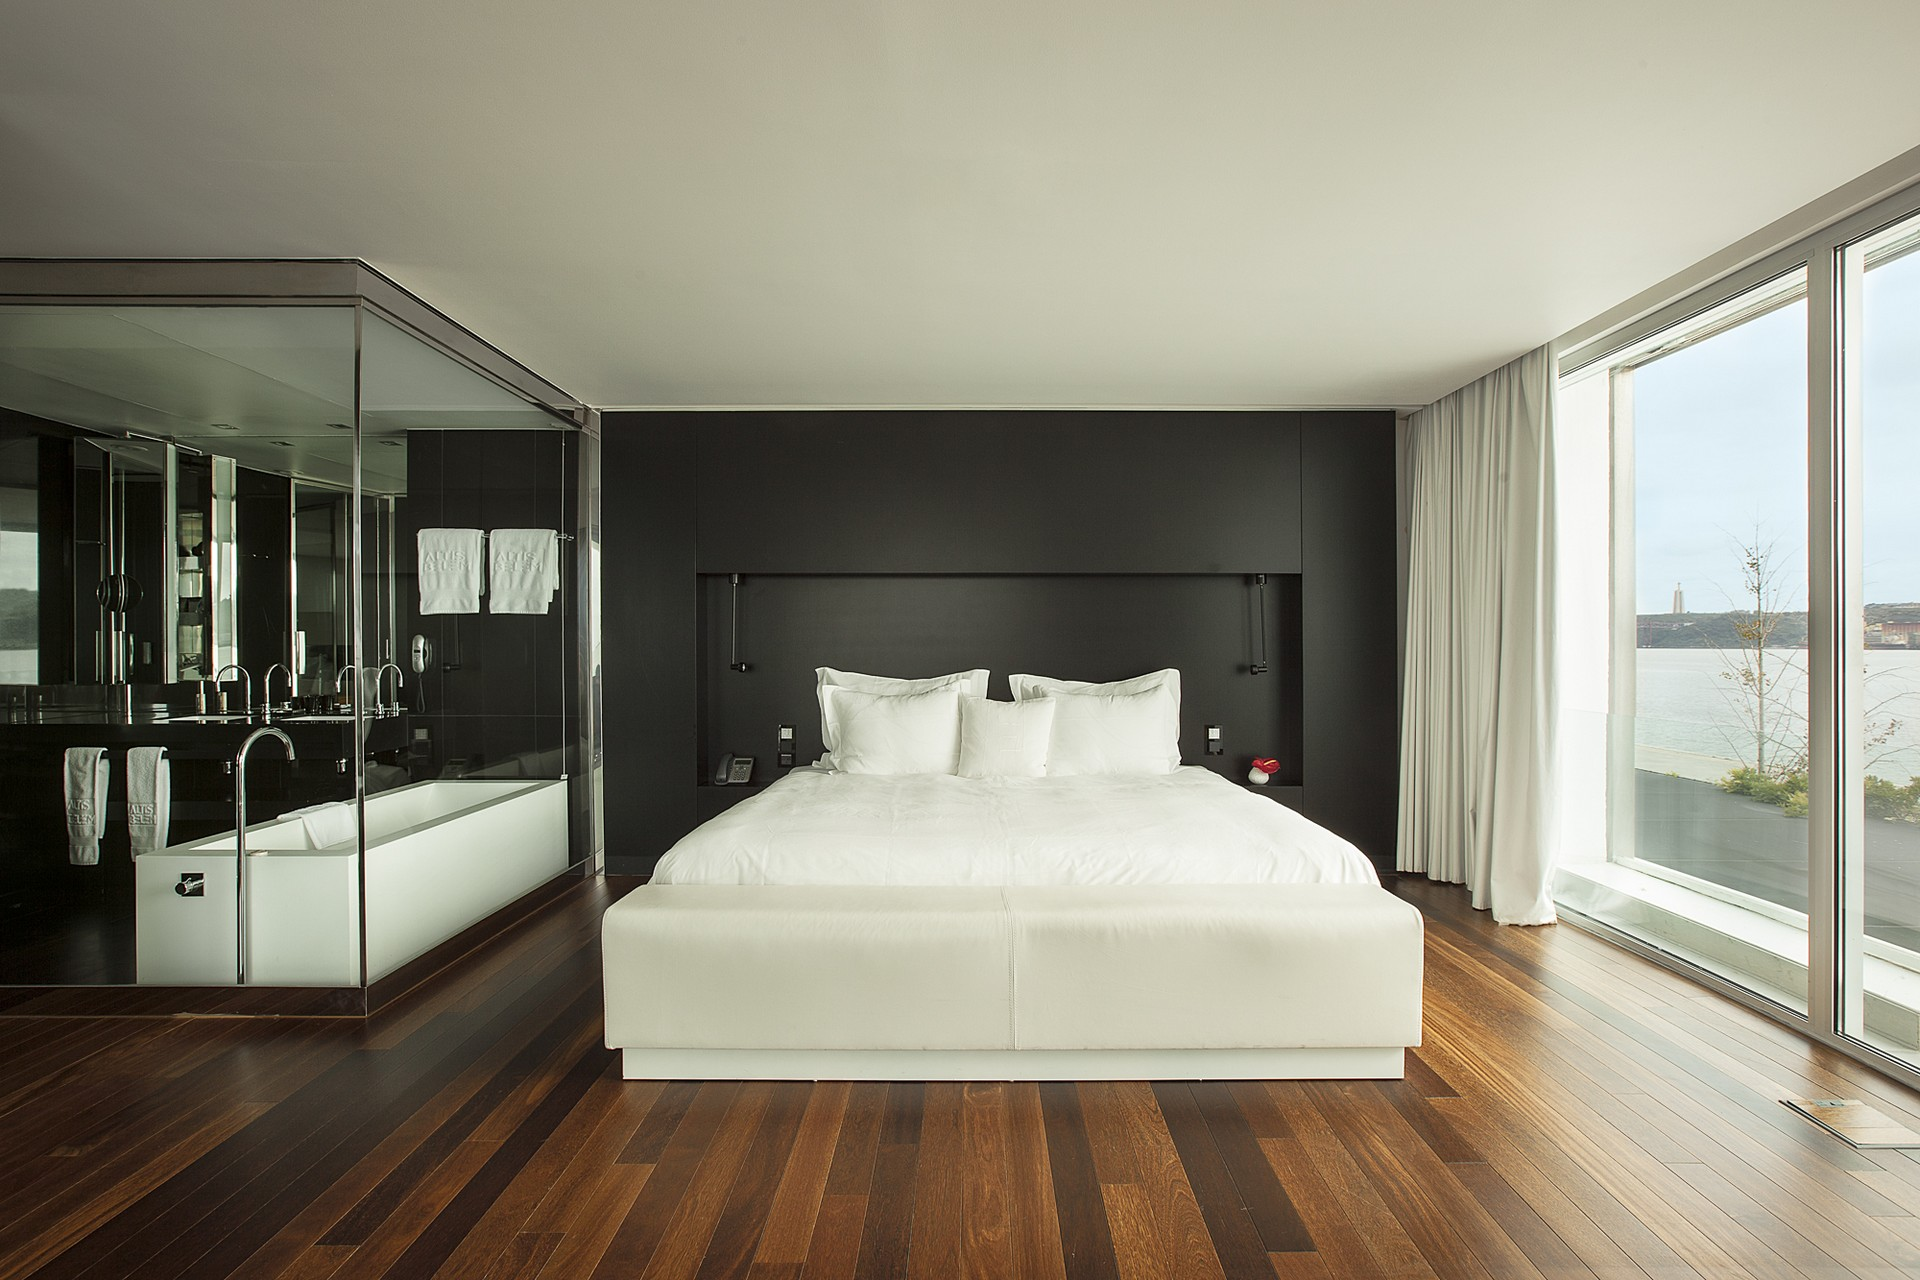 Luxury Hotels To Discover in Lisbon: Altis Belém Hotel & Spa luxury hotels Luxury Hotels To Discover in Lisbon Luxury Hotels To Discover in Lisbon 1